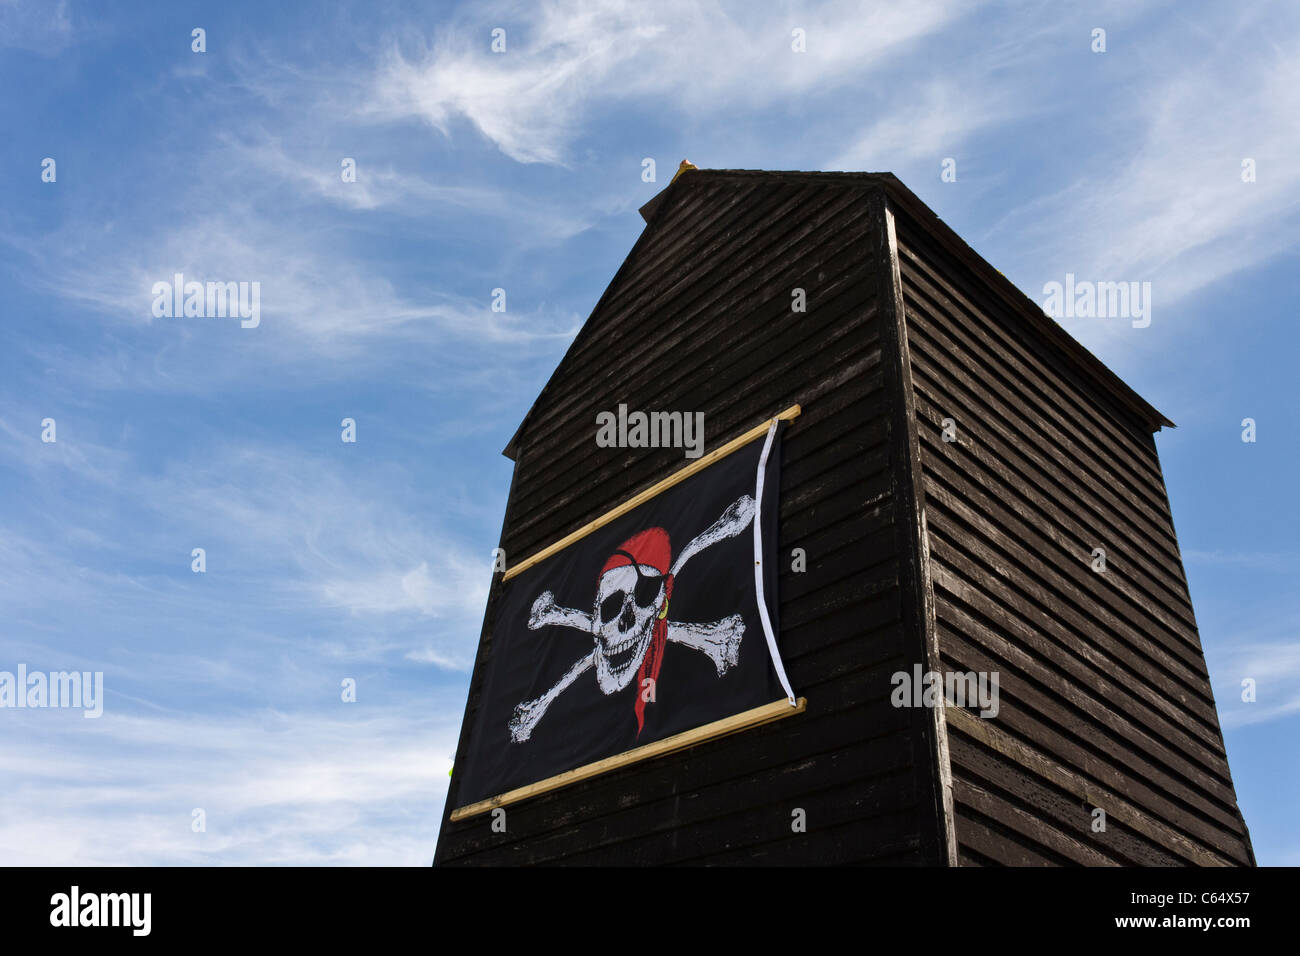 A skull and crossbones pirate flag on the side of a Net Shop in Hastings, Sussex. - Stock Image